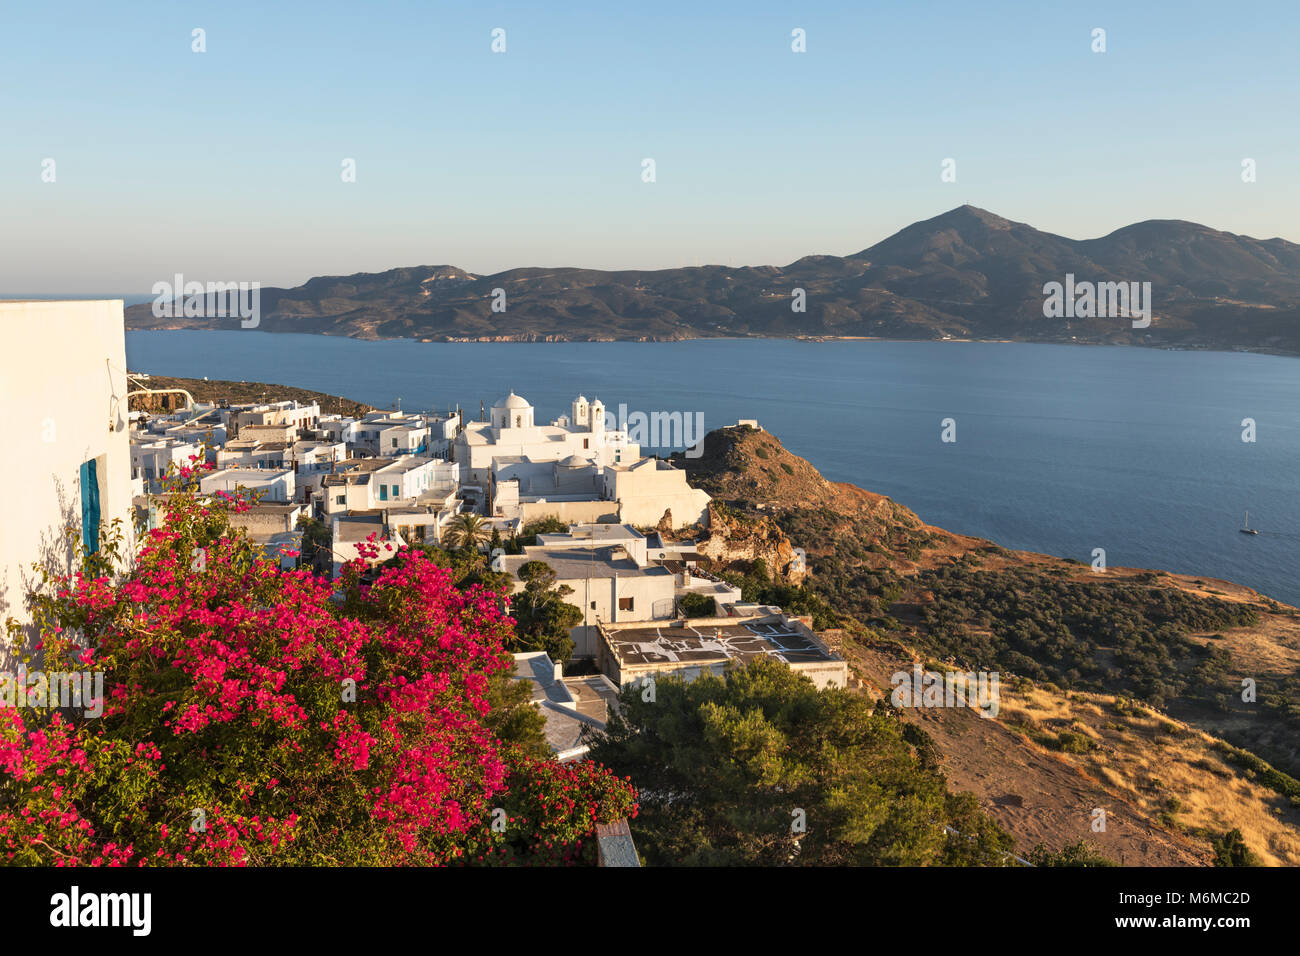 View over town of Plaka and Milos Bay, Plaka, Milos, Cyclades, Aegean Sea, Greek Islands; Greece; Europe - Stock Image